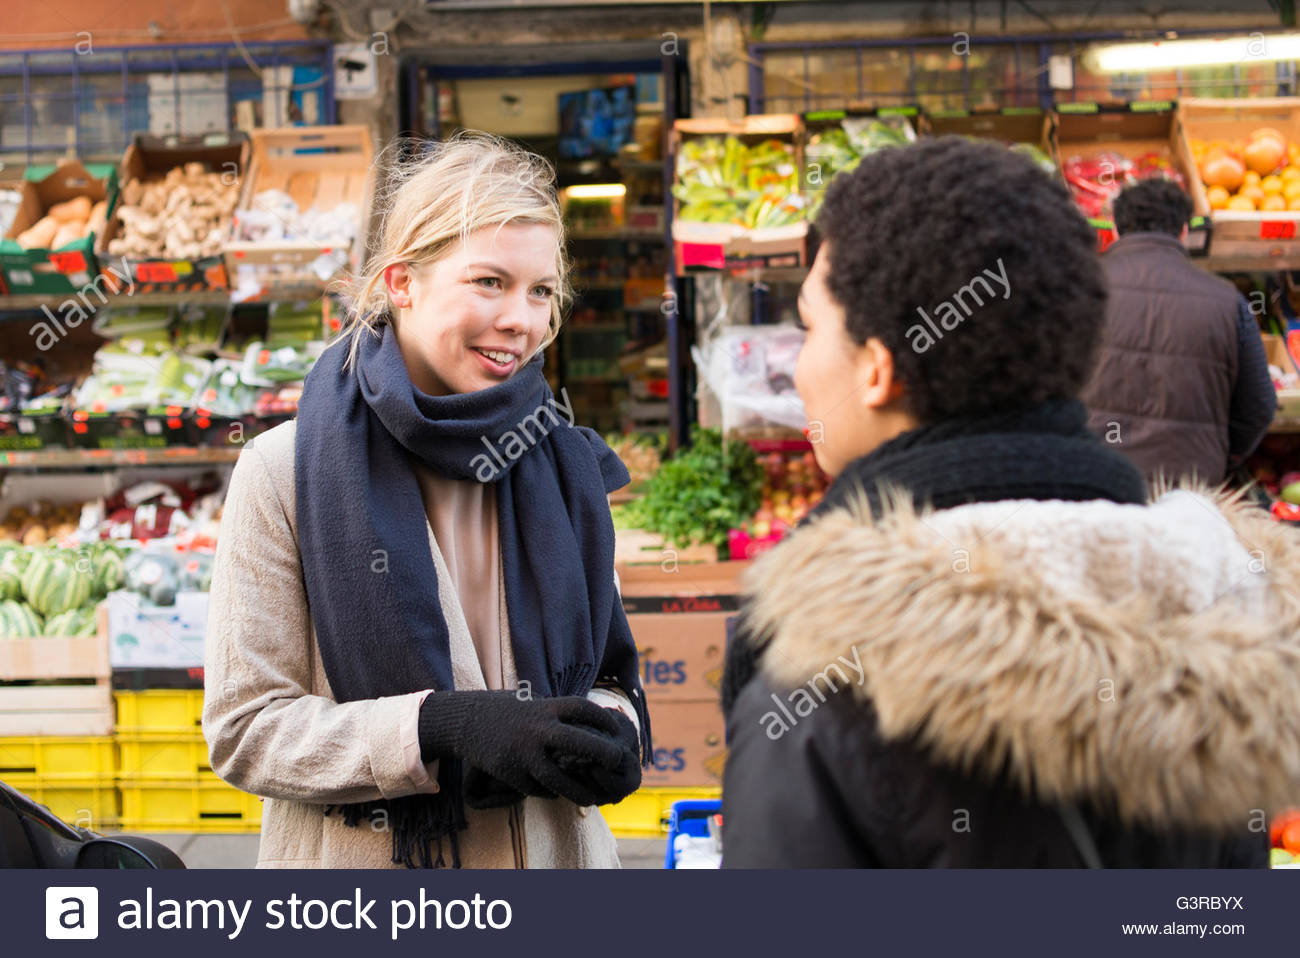 Sweden, Skane, Malmo, Two young women talking - Stock Image